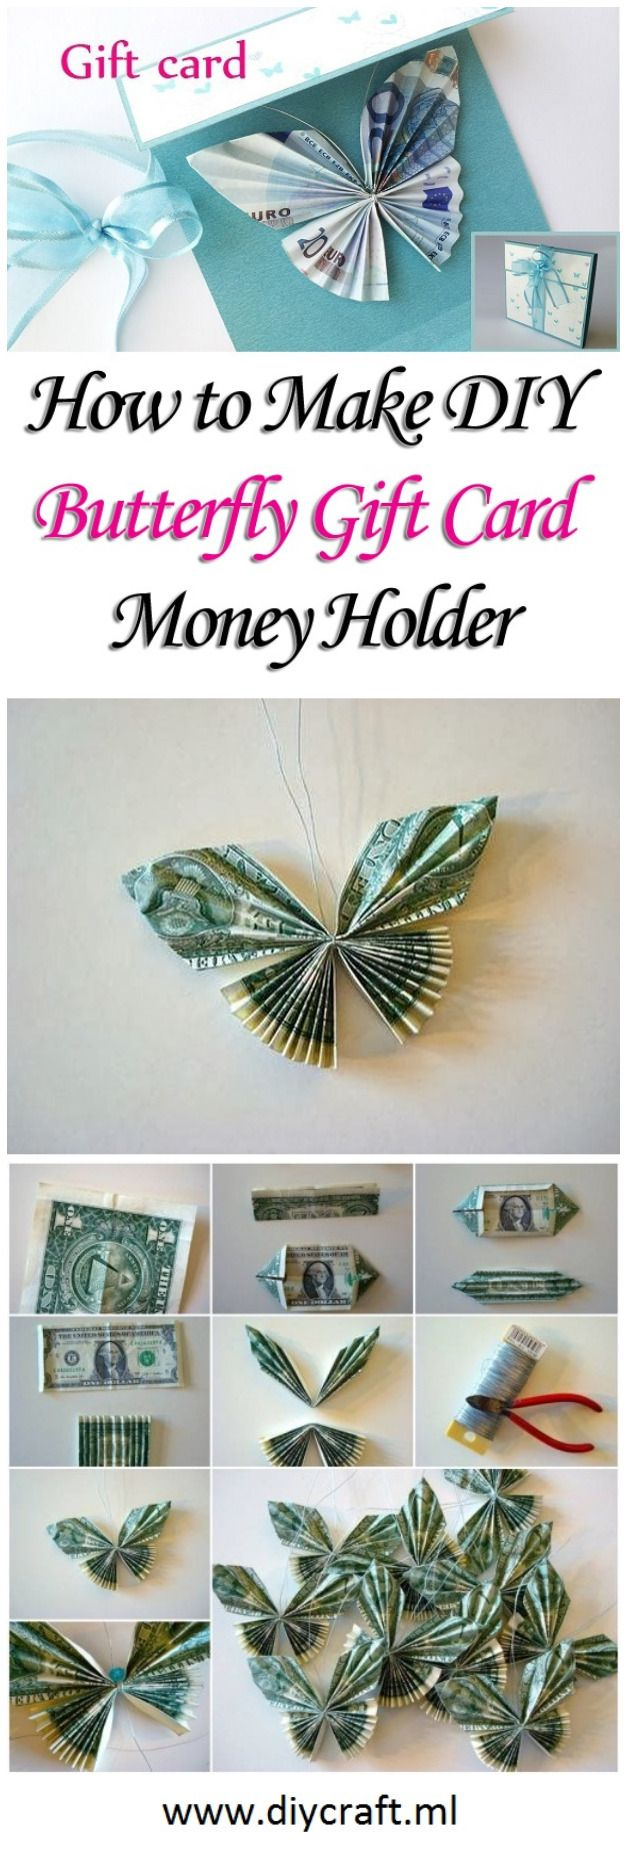 Wedding Gift Giving Money : ... Wedding money gifts on Pinterest Gift money, Birthday money gifts